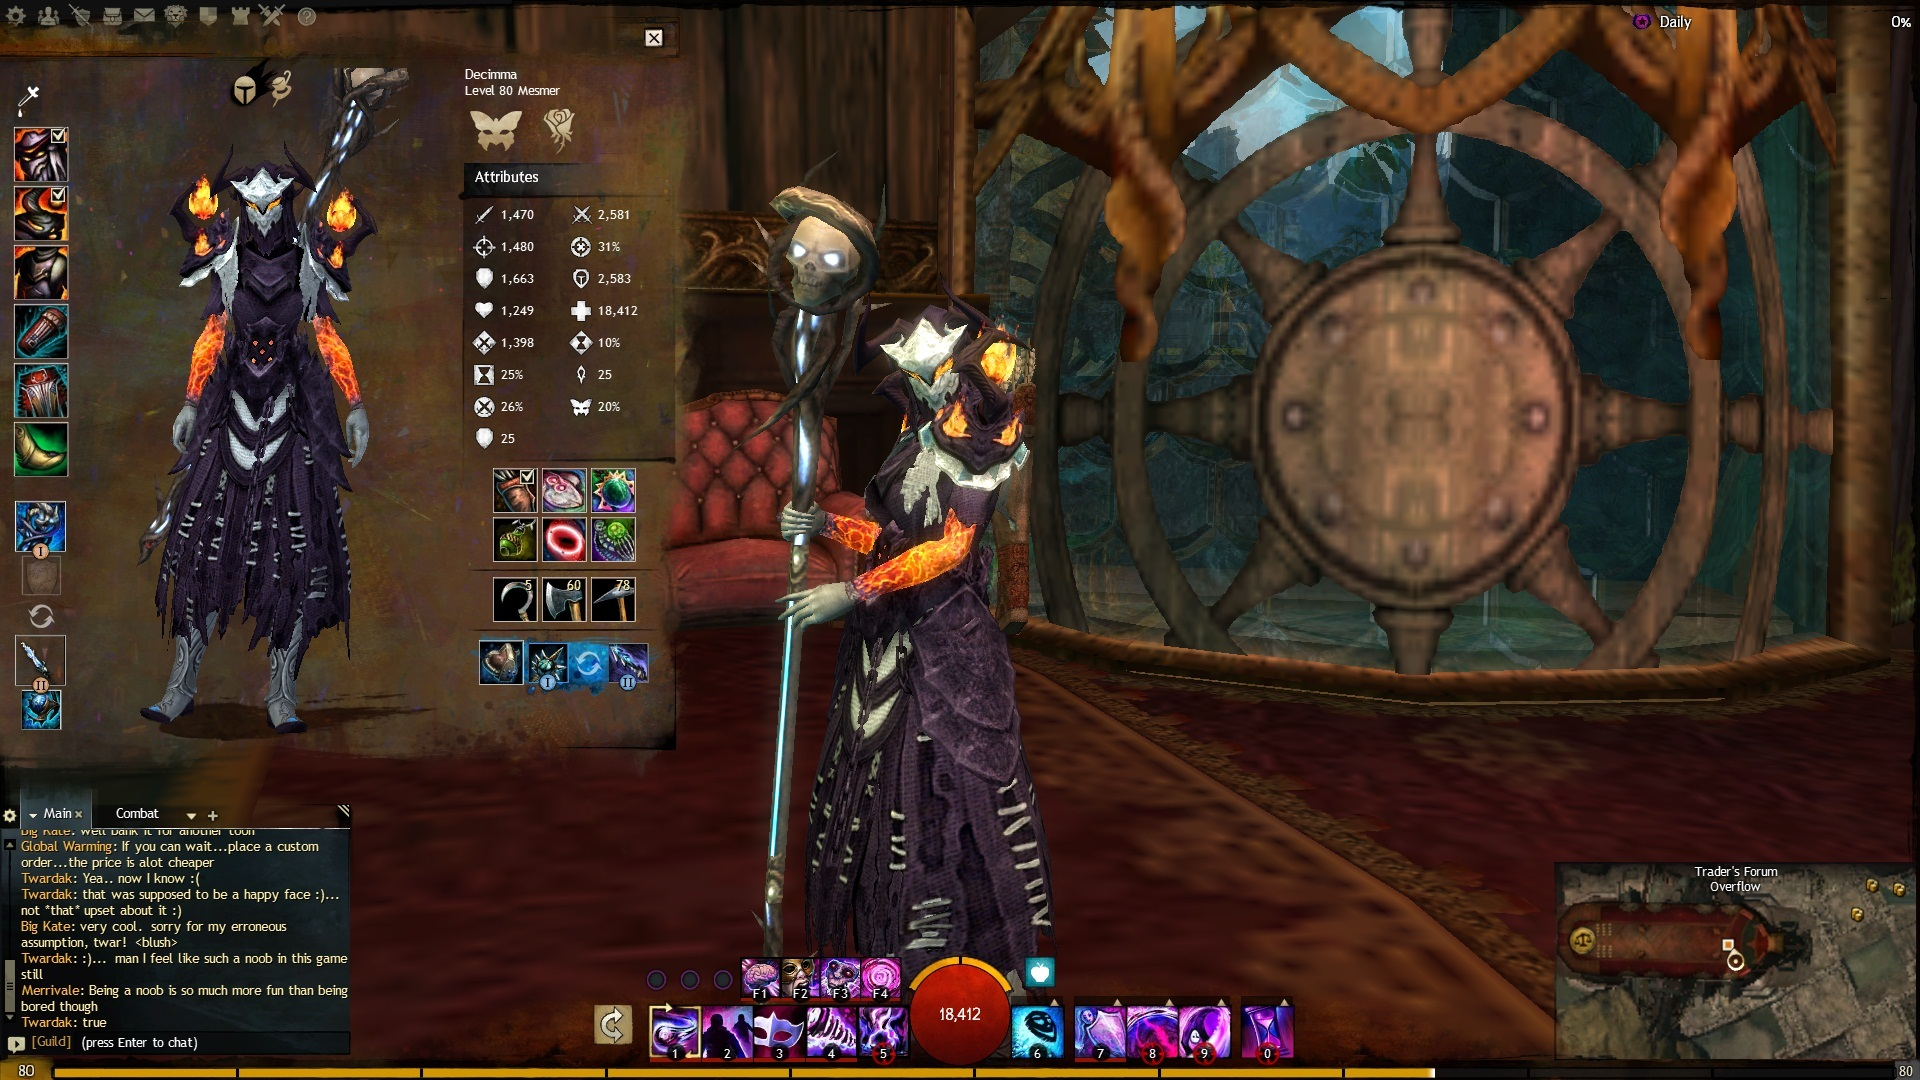 Mesmer pve leveling build and guide | guild wars 2 beginner's.